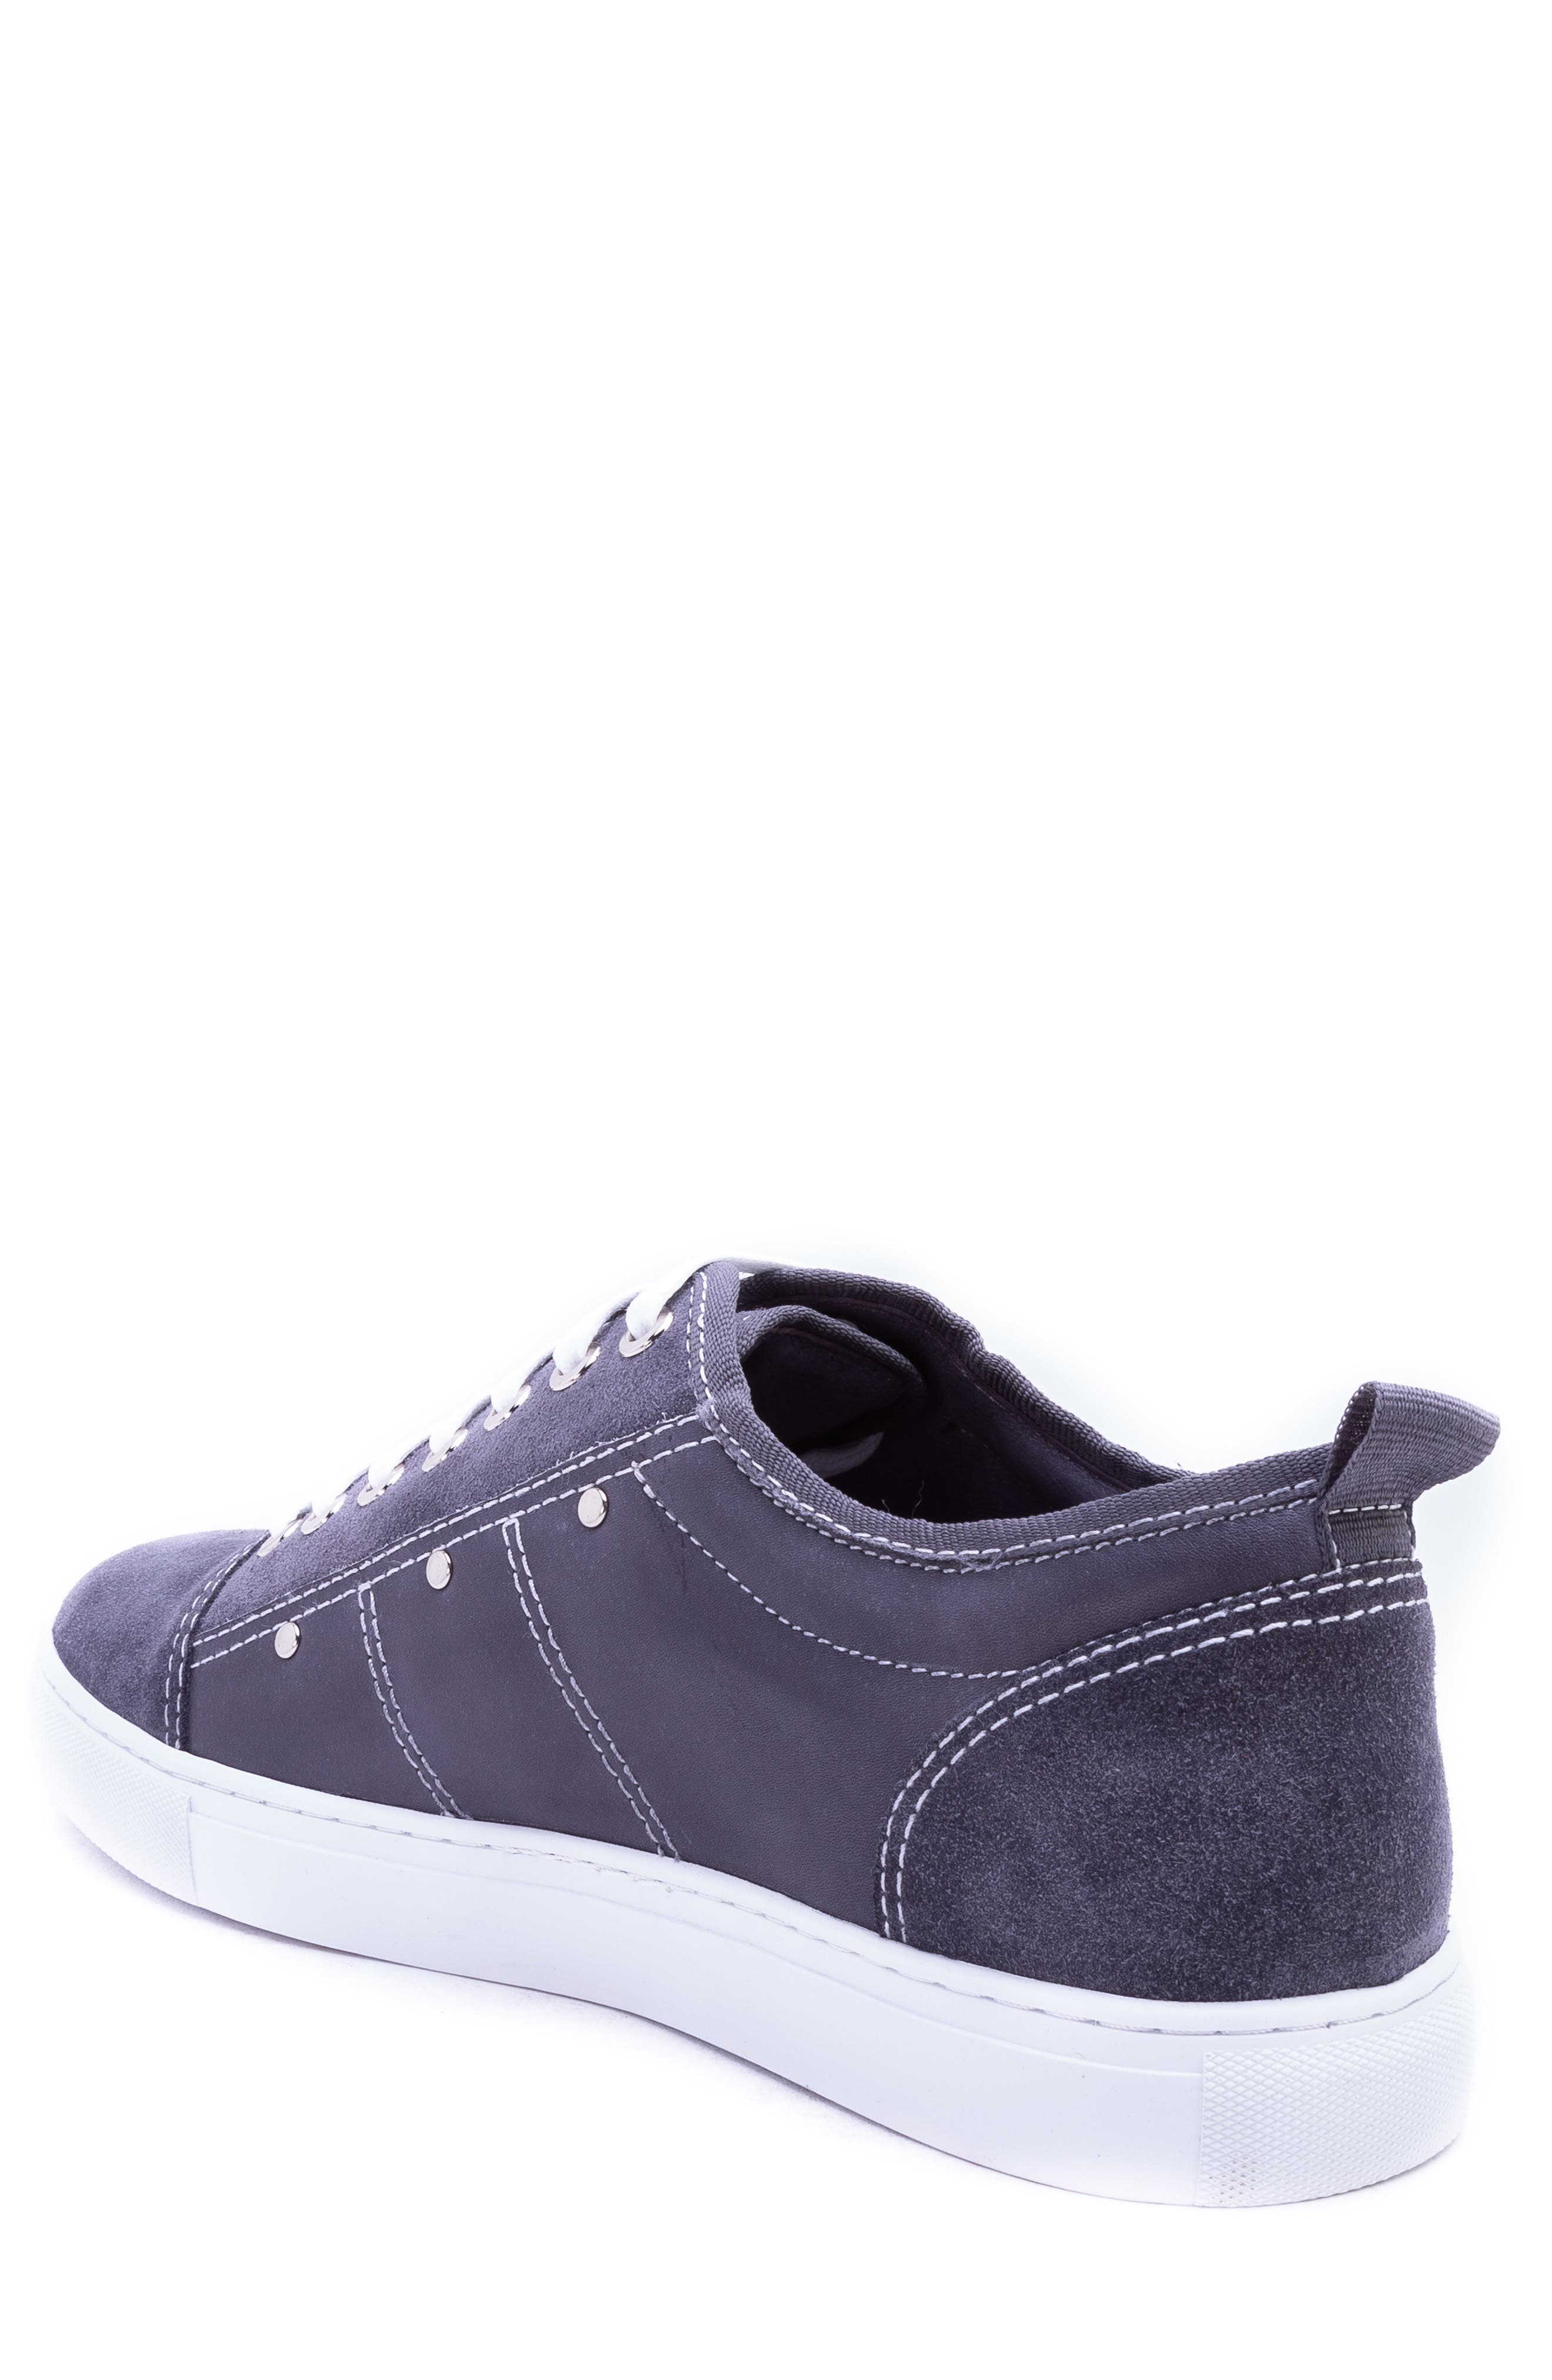 Severn Studded Low Top Sneaker,                             Alternate thumbnail 2, color,                             GREY SUEDE/ LEATHER